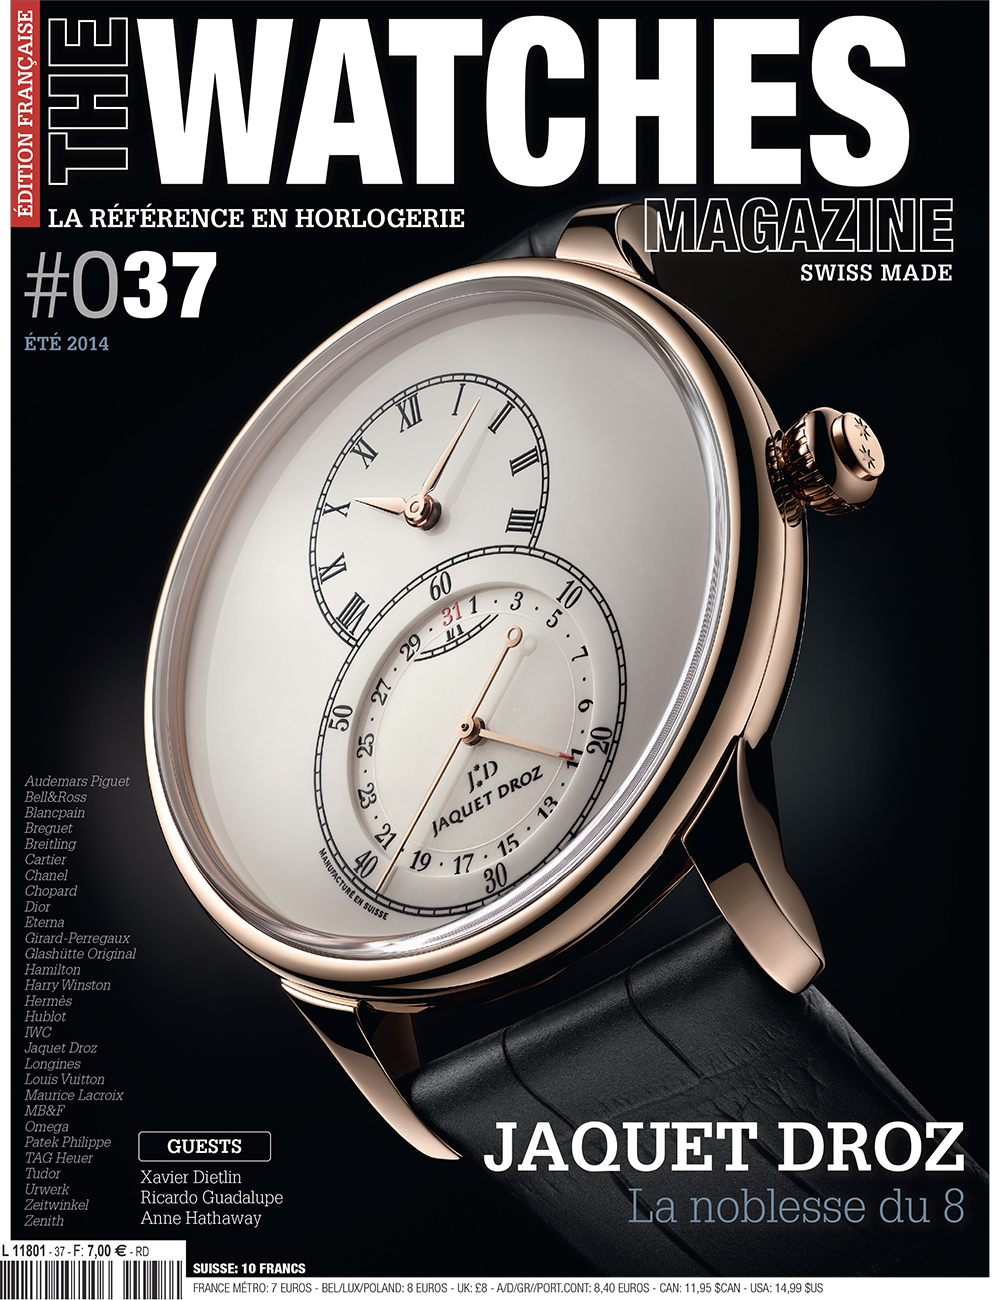 The Watches Magazine: Are watchmakers lagging behind? by Xavier Dietlin